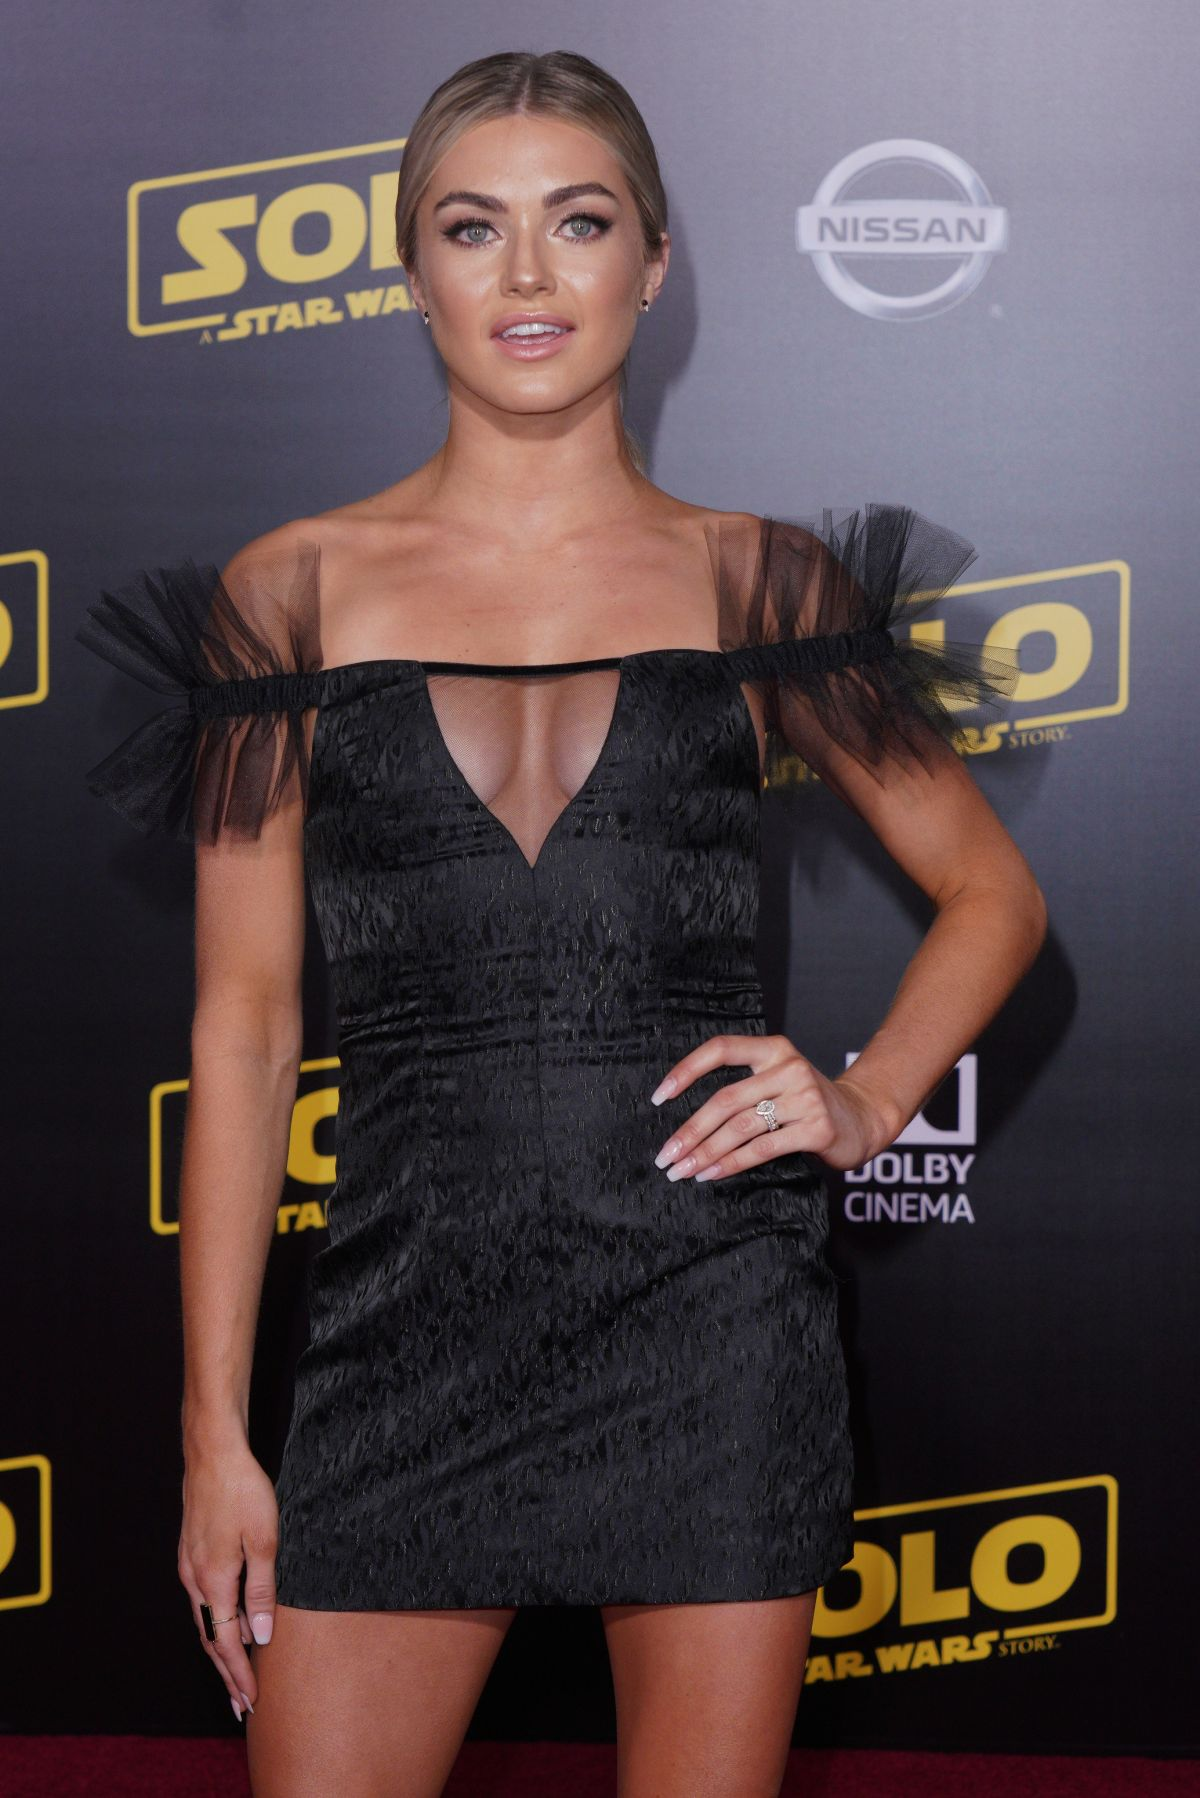 70752361_lindsay-arnold-solo-a-star-wars-story-hollywood-premiere-in-la-10-05-2018.jpg